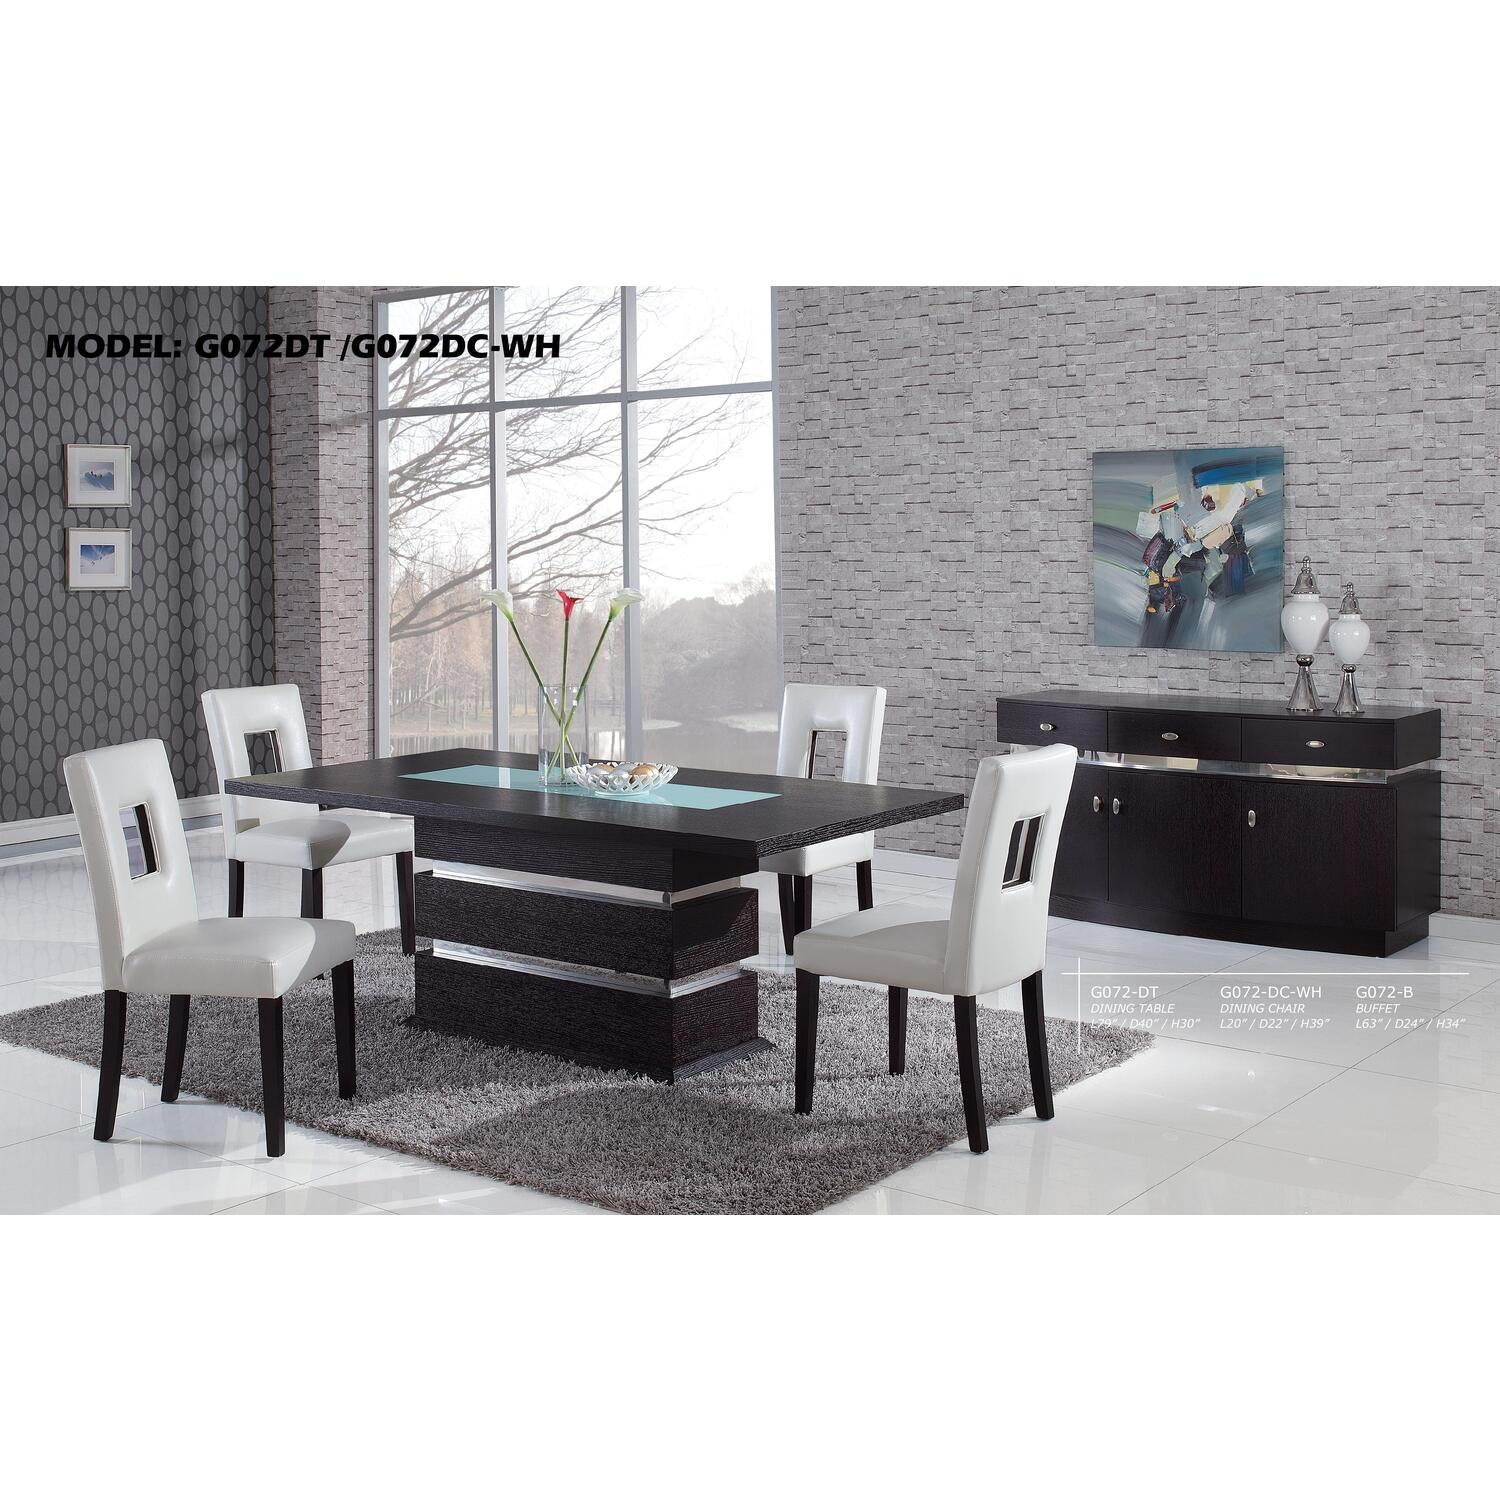 Attractive Jordan Furniture Dining Room Sets Inpretty Part 9